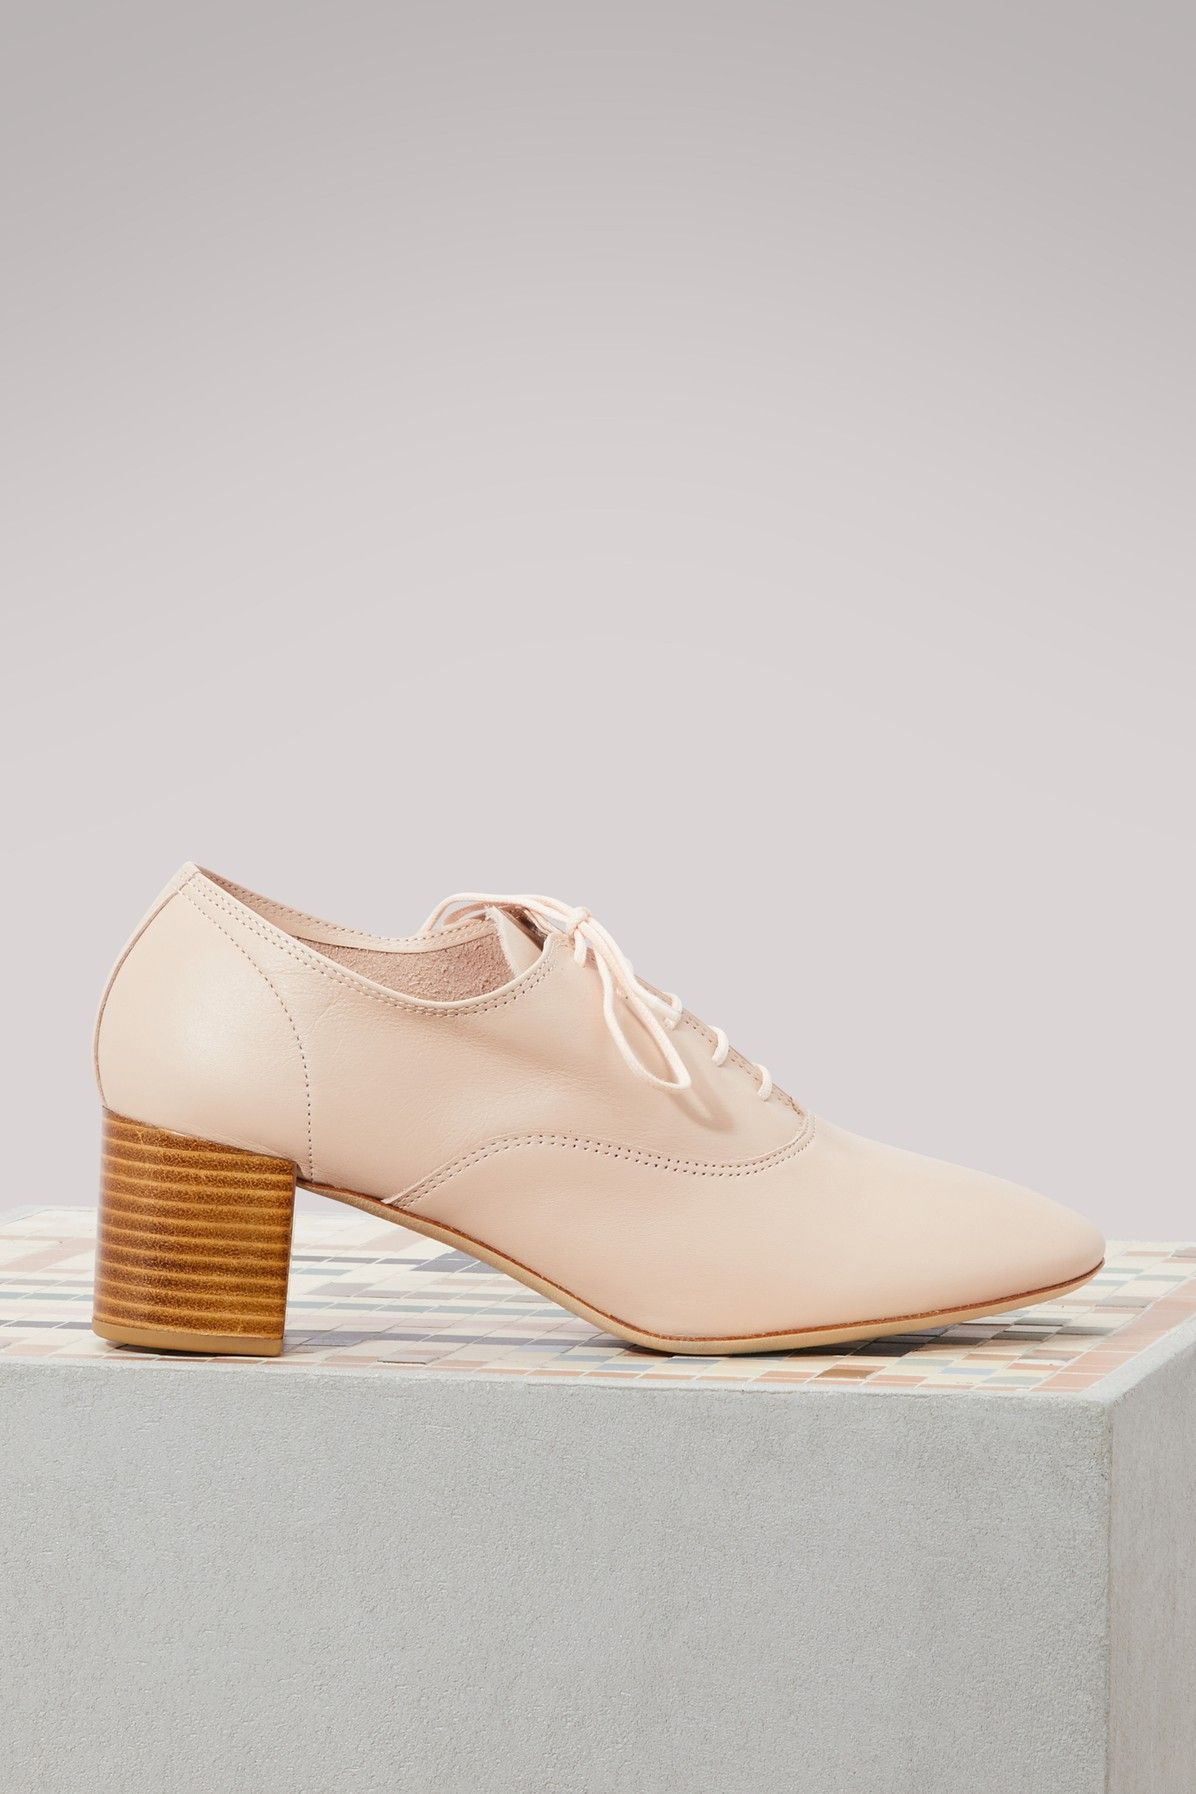 Repetto Fado brogues with heels Outlet Nicekicks QHVHJOr